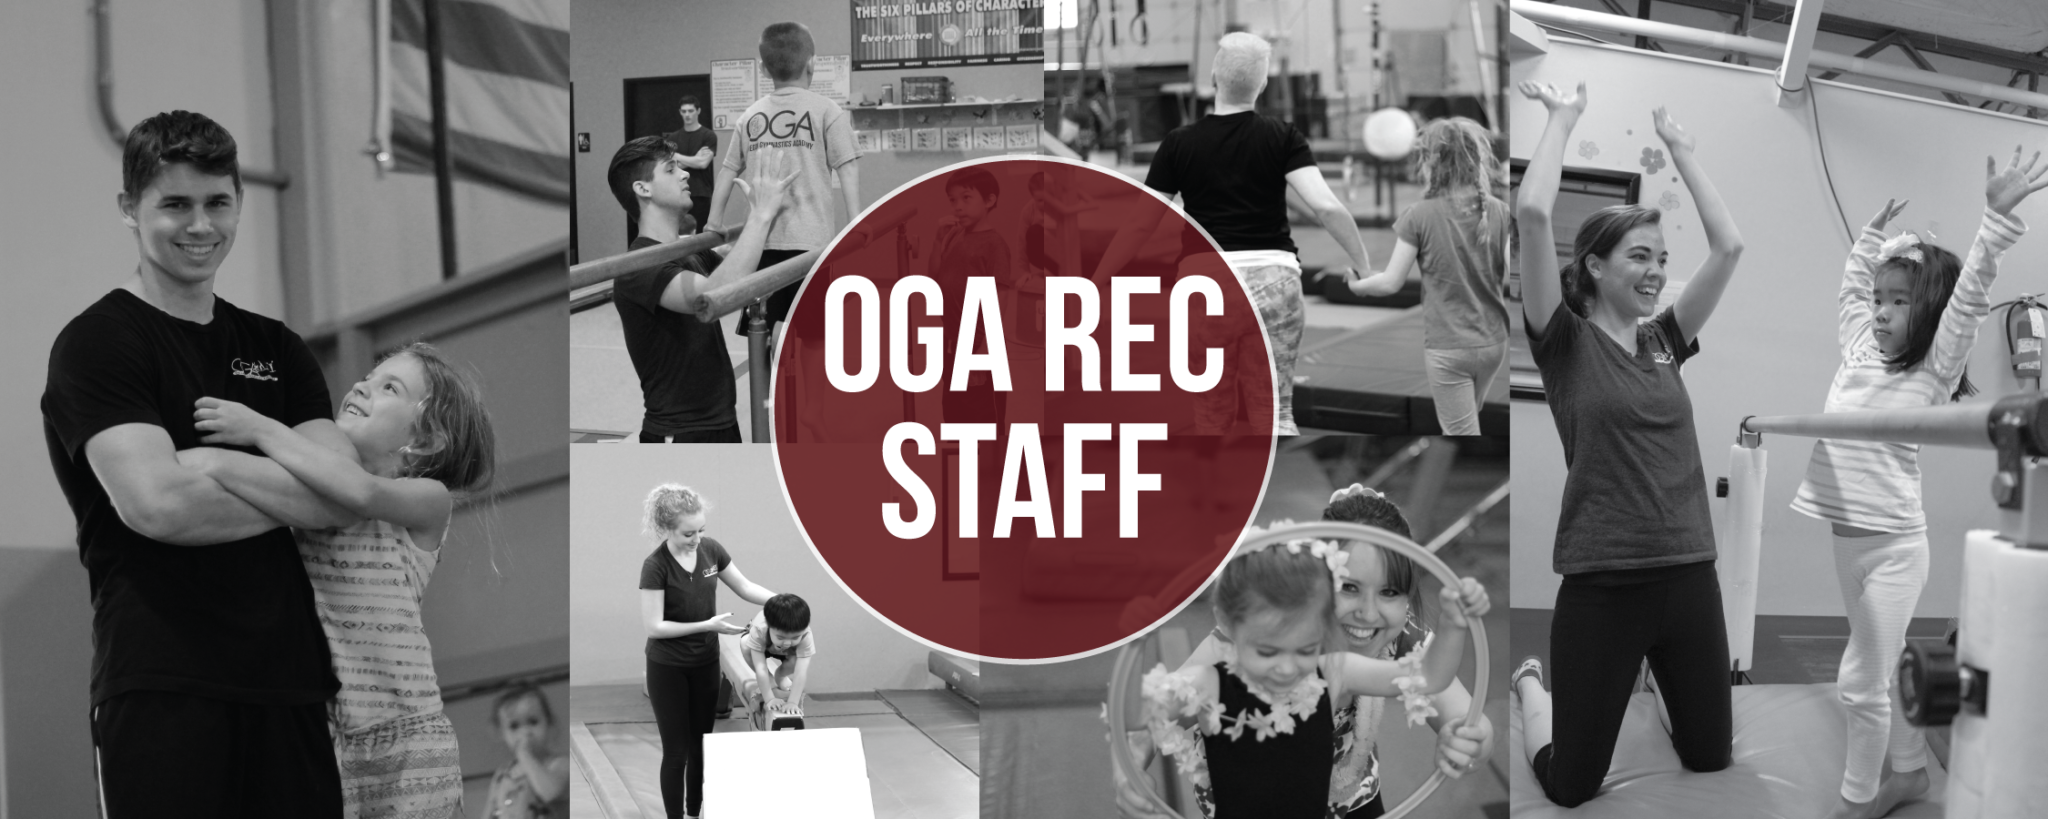 OGA Recreational Staff